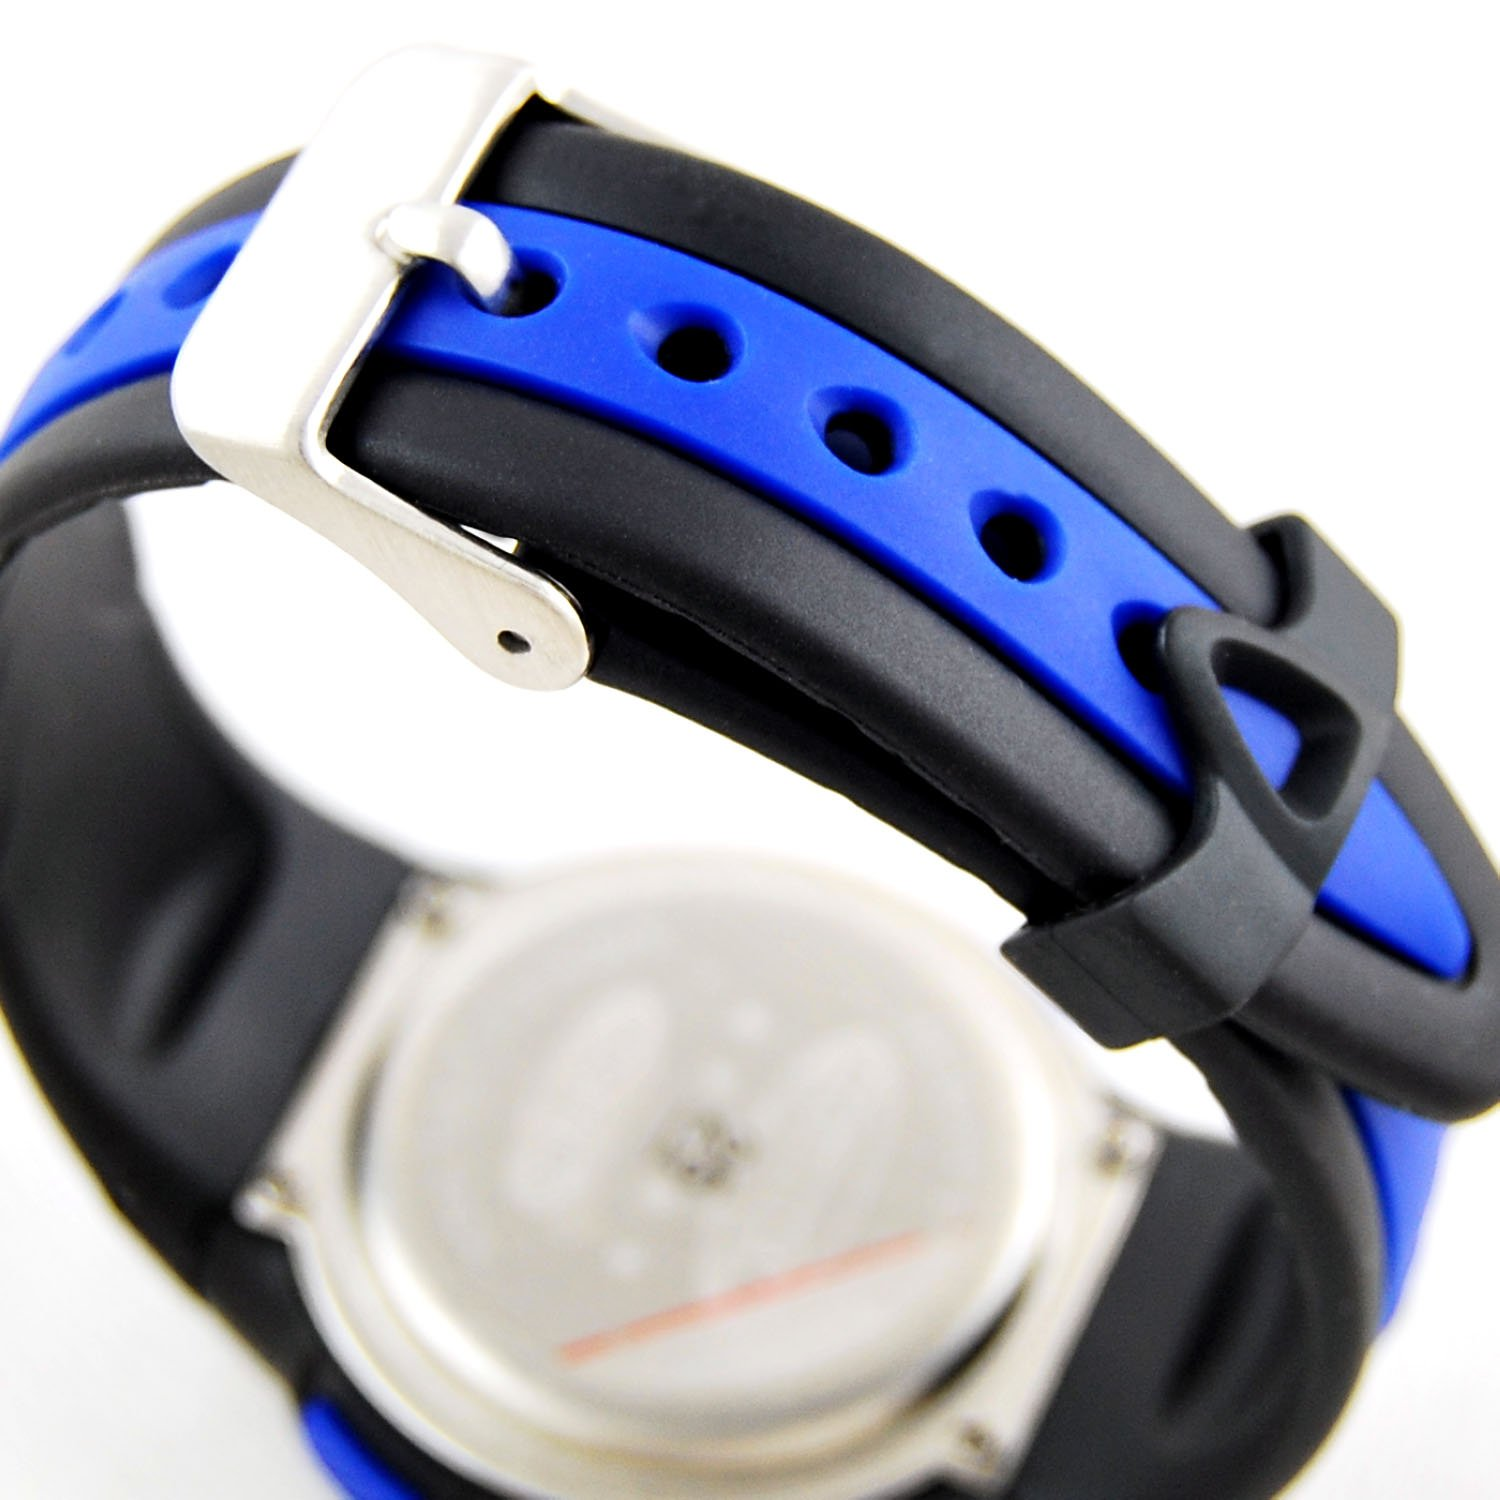 AZLAND Waterproof Swimming Led Digital Sports Watches for Children Kids Girls Boys,Rubber Strap,Blue by AZLAND (Image #4)